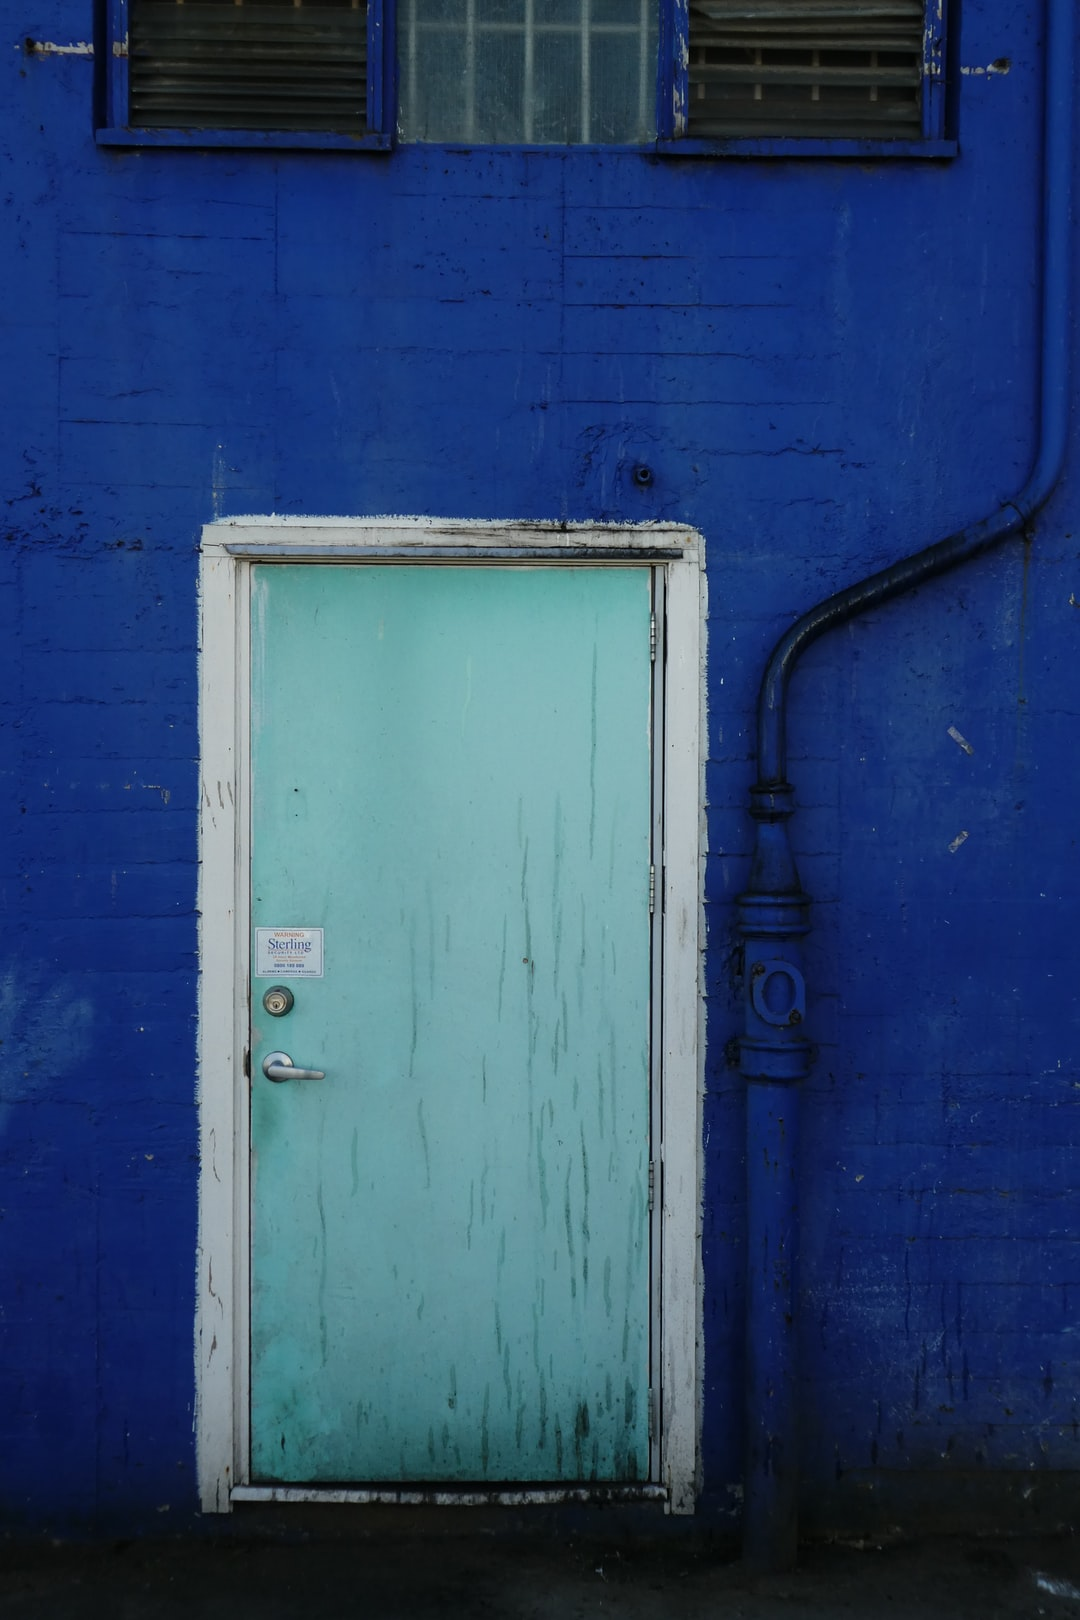 the blue door and blue wall.